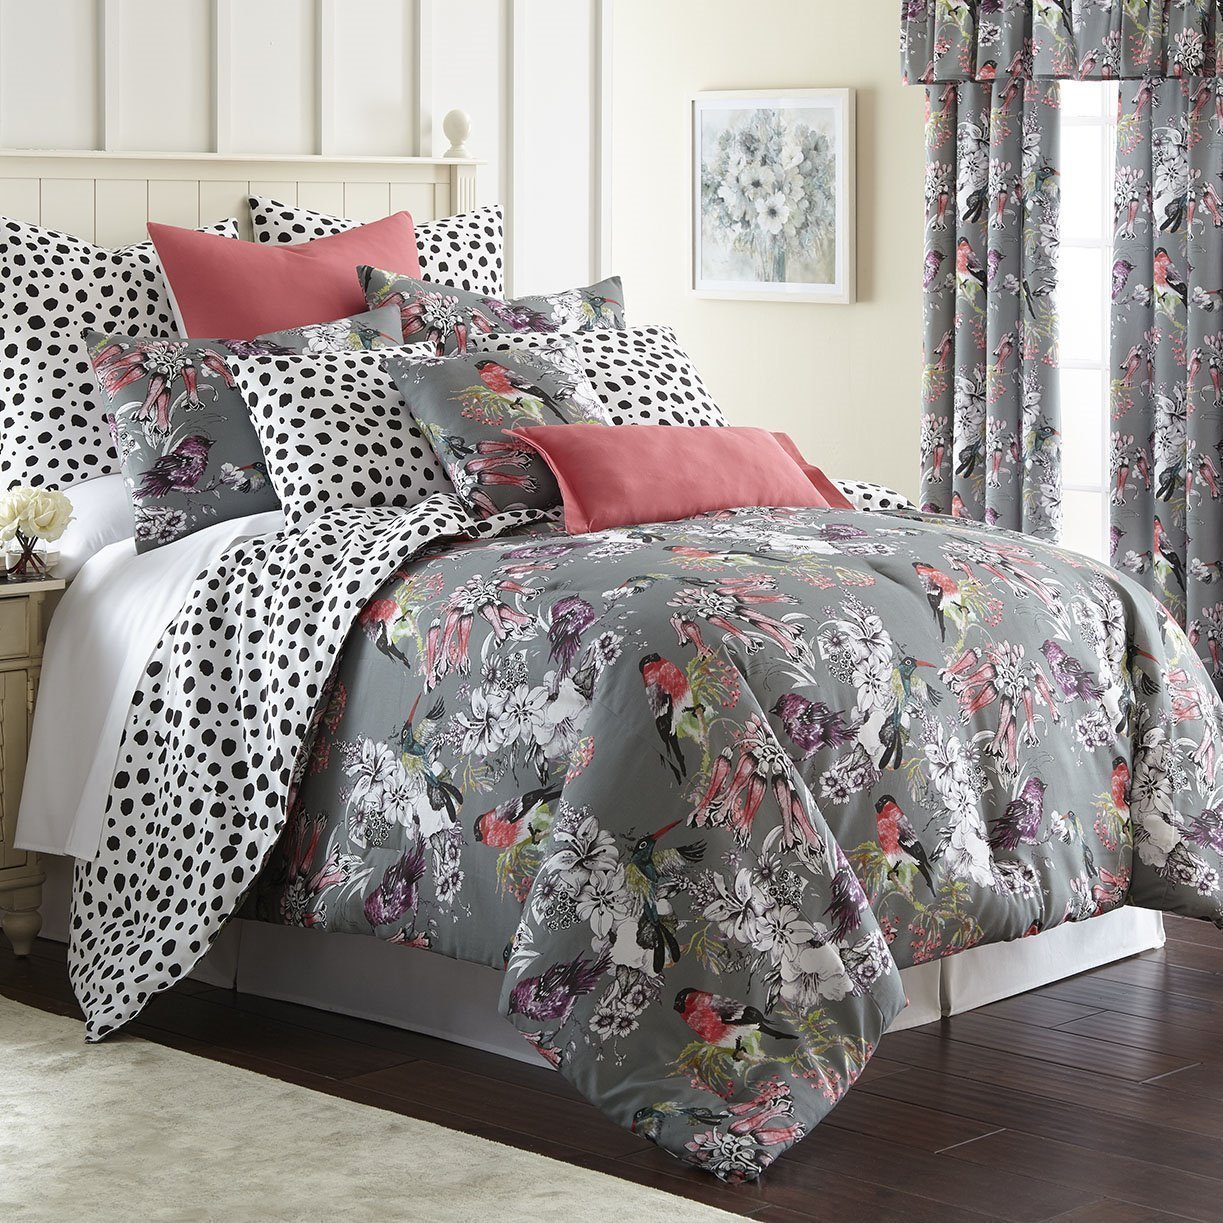 Birds In Bliss Duvet Cover Set Reversible Full